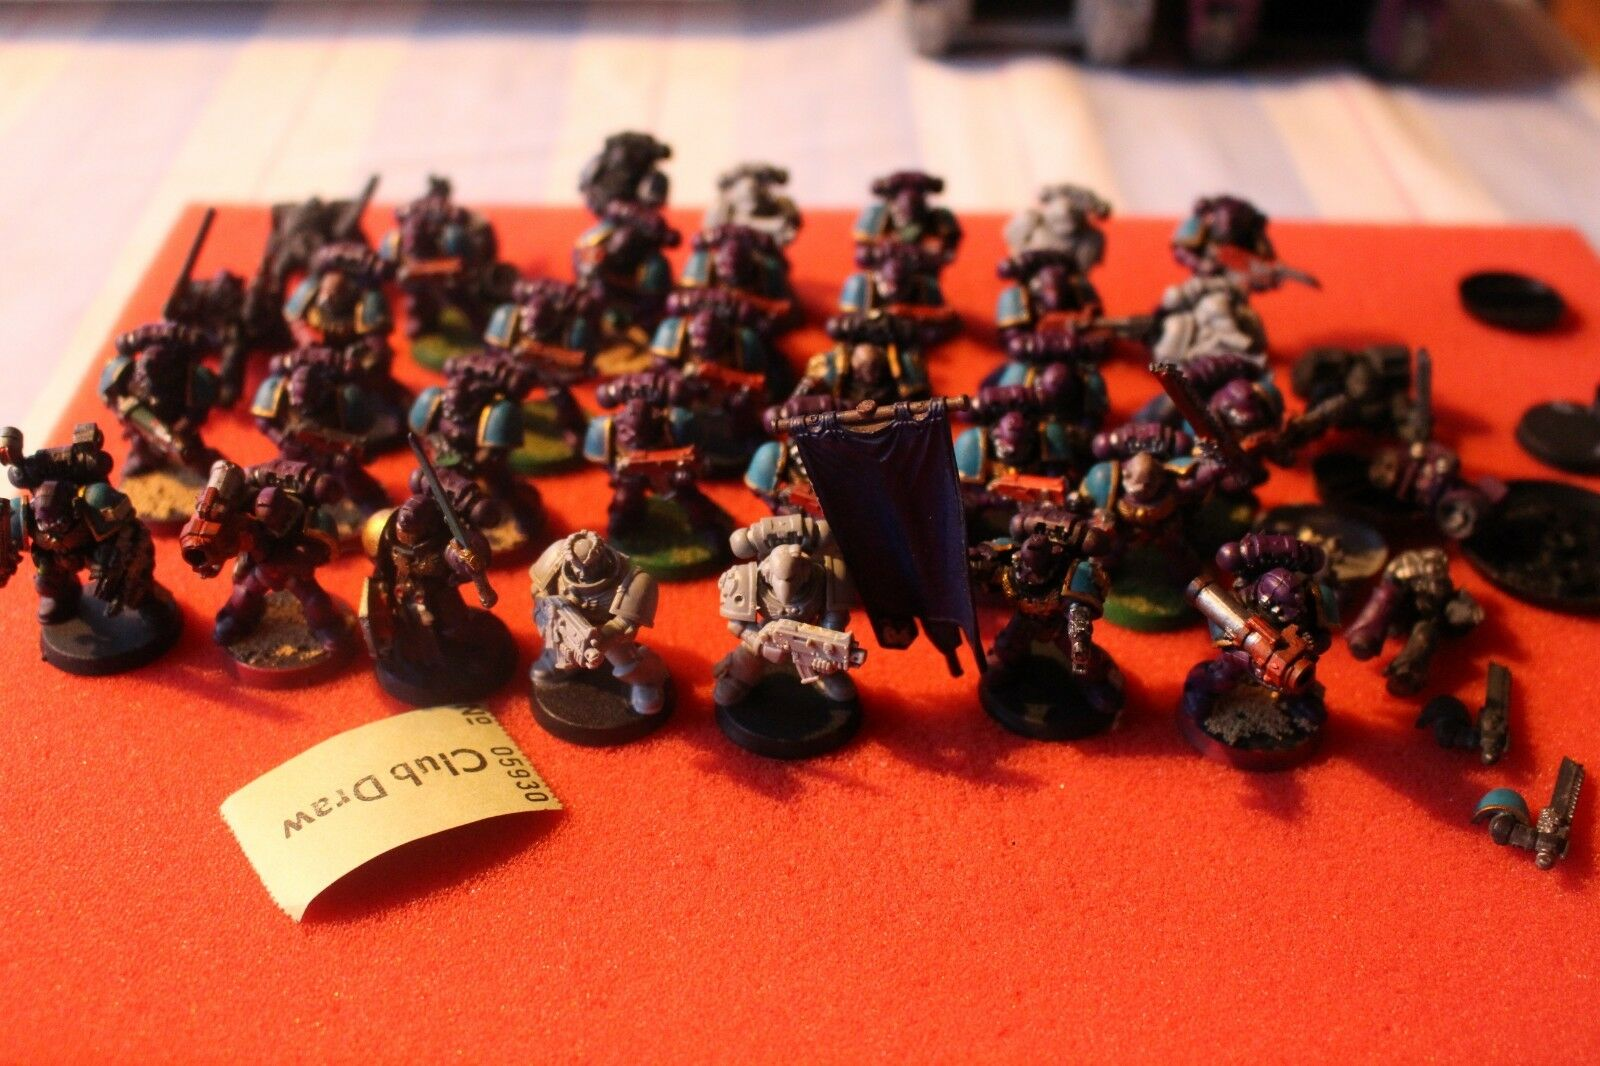 Games Workshop Warhammer 40k Space Marines Army Tactical Marines Command Army GW